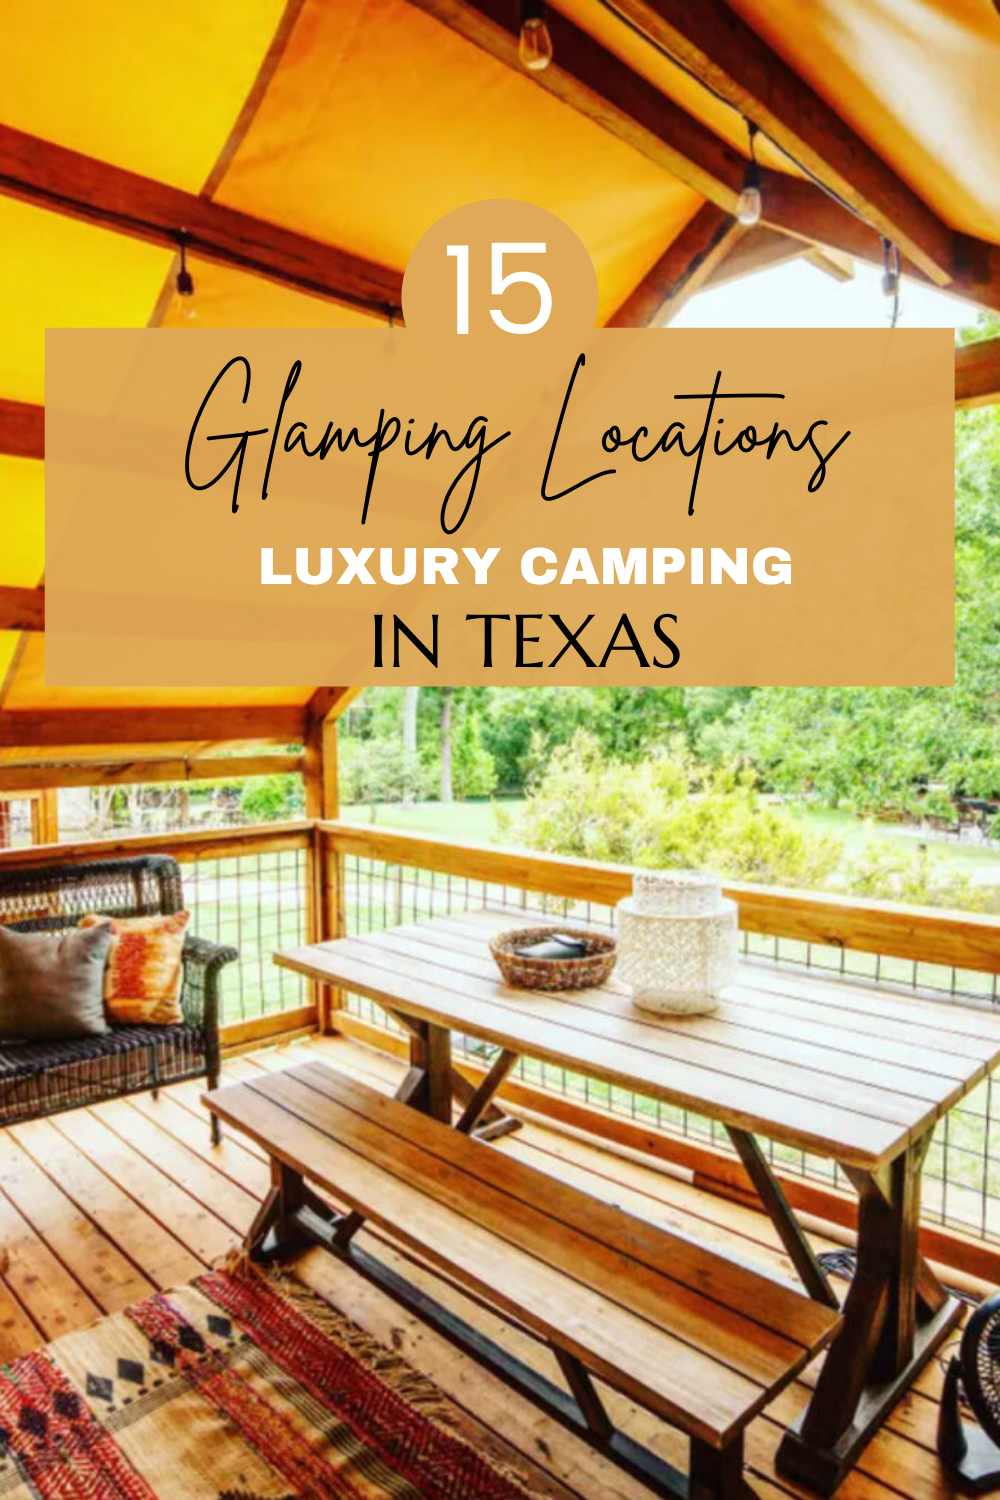 15 locatins for luxury camping Texas or glamping in Texas